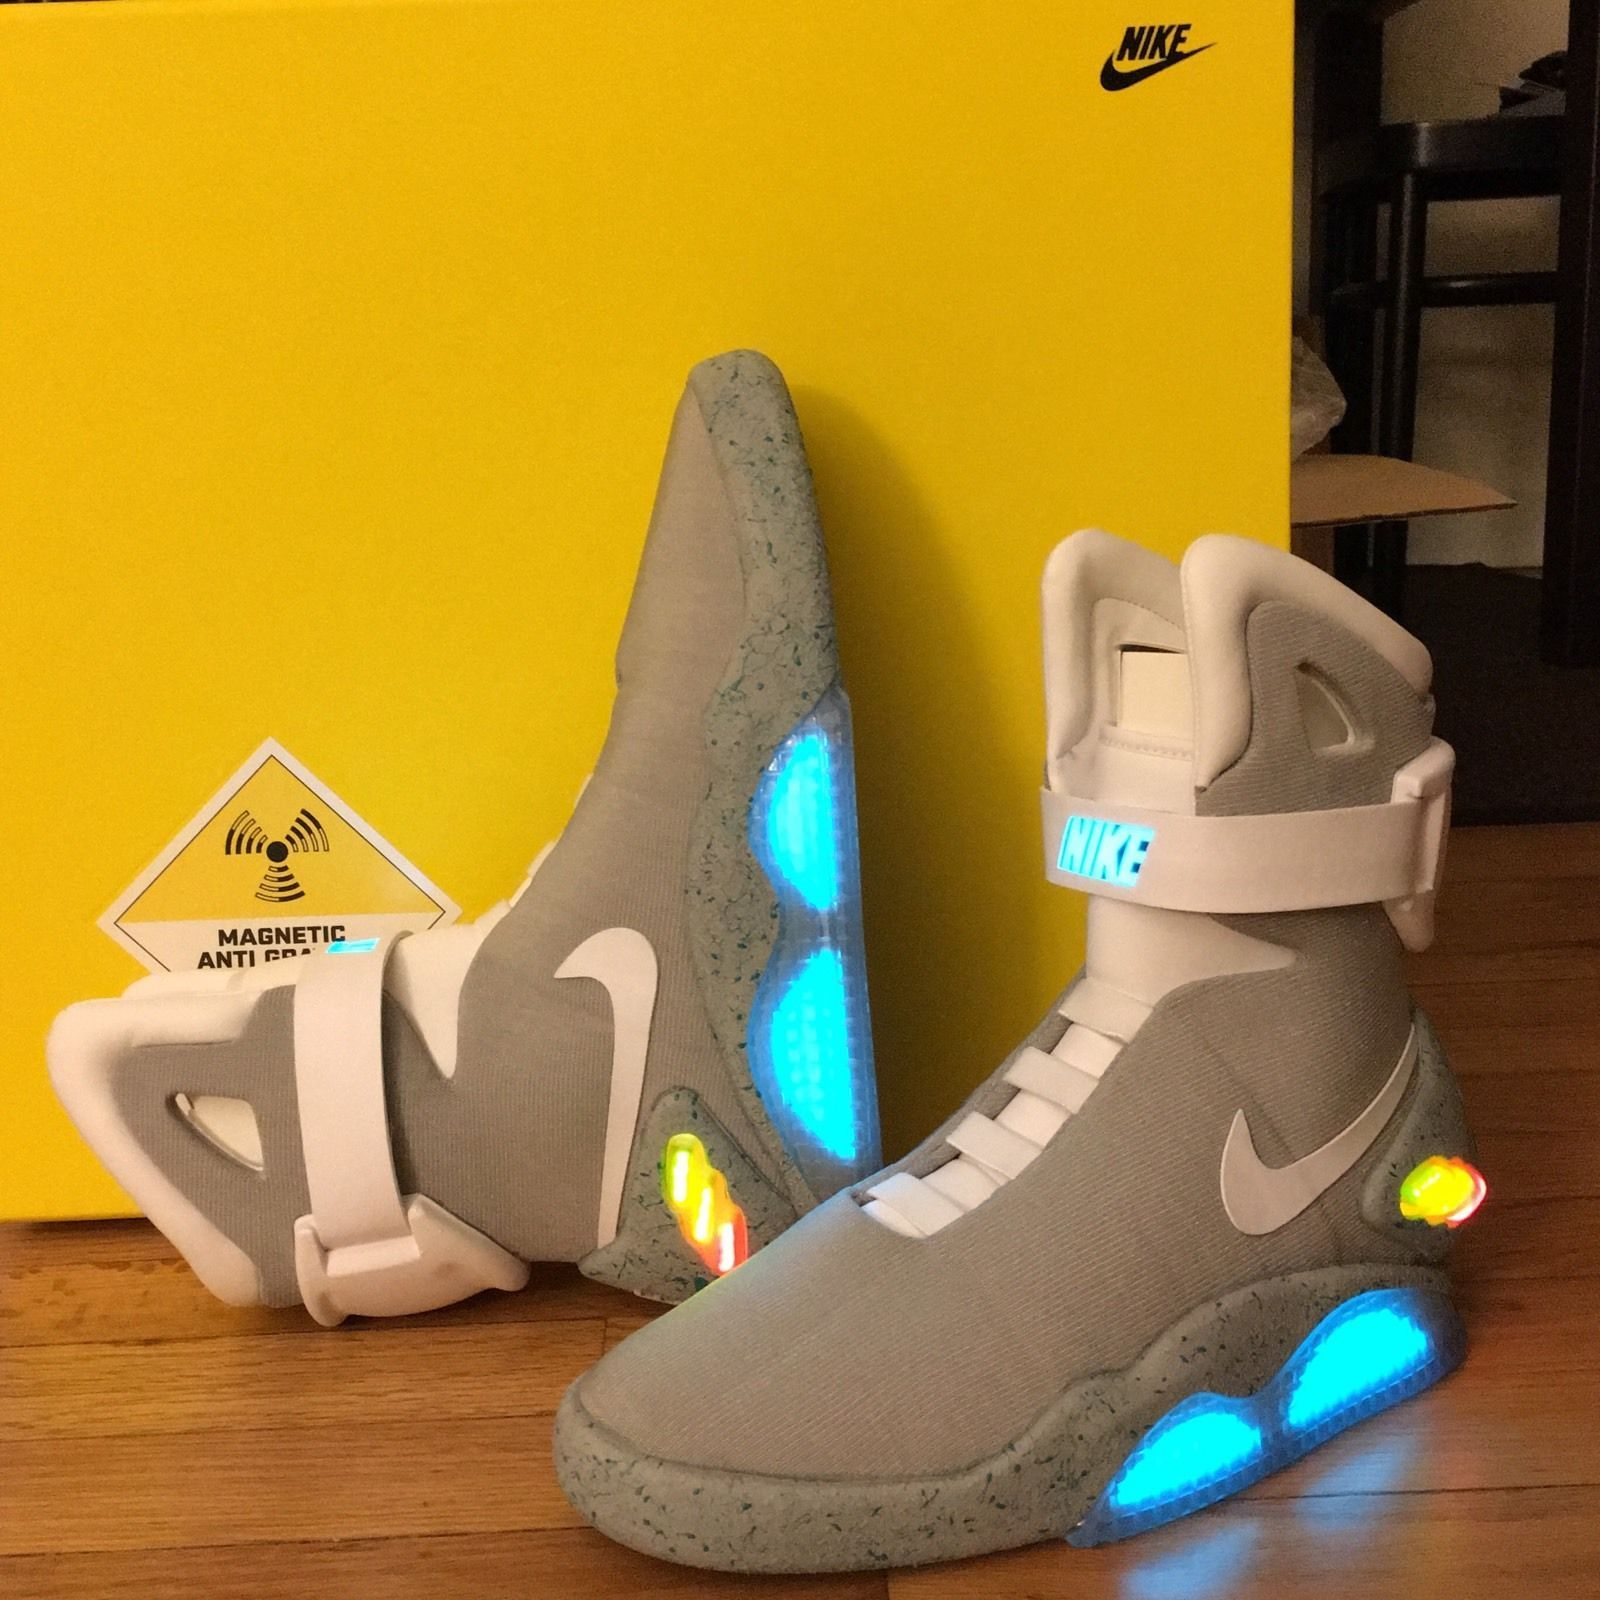 2011 Nike Air Mag Marty Mcfly Back To The Future Ii Bttf Sneakers